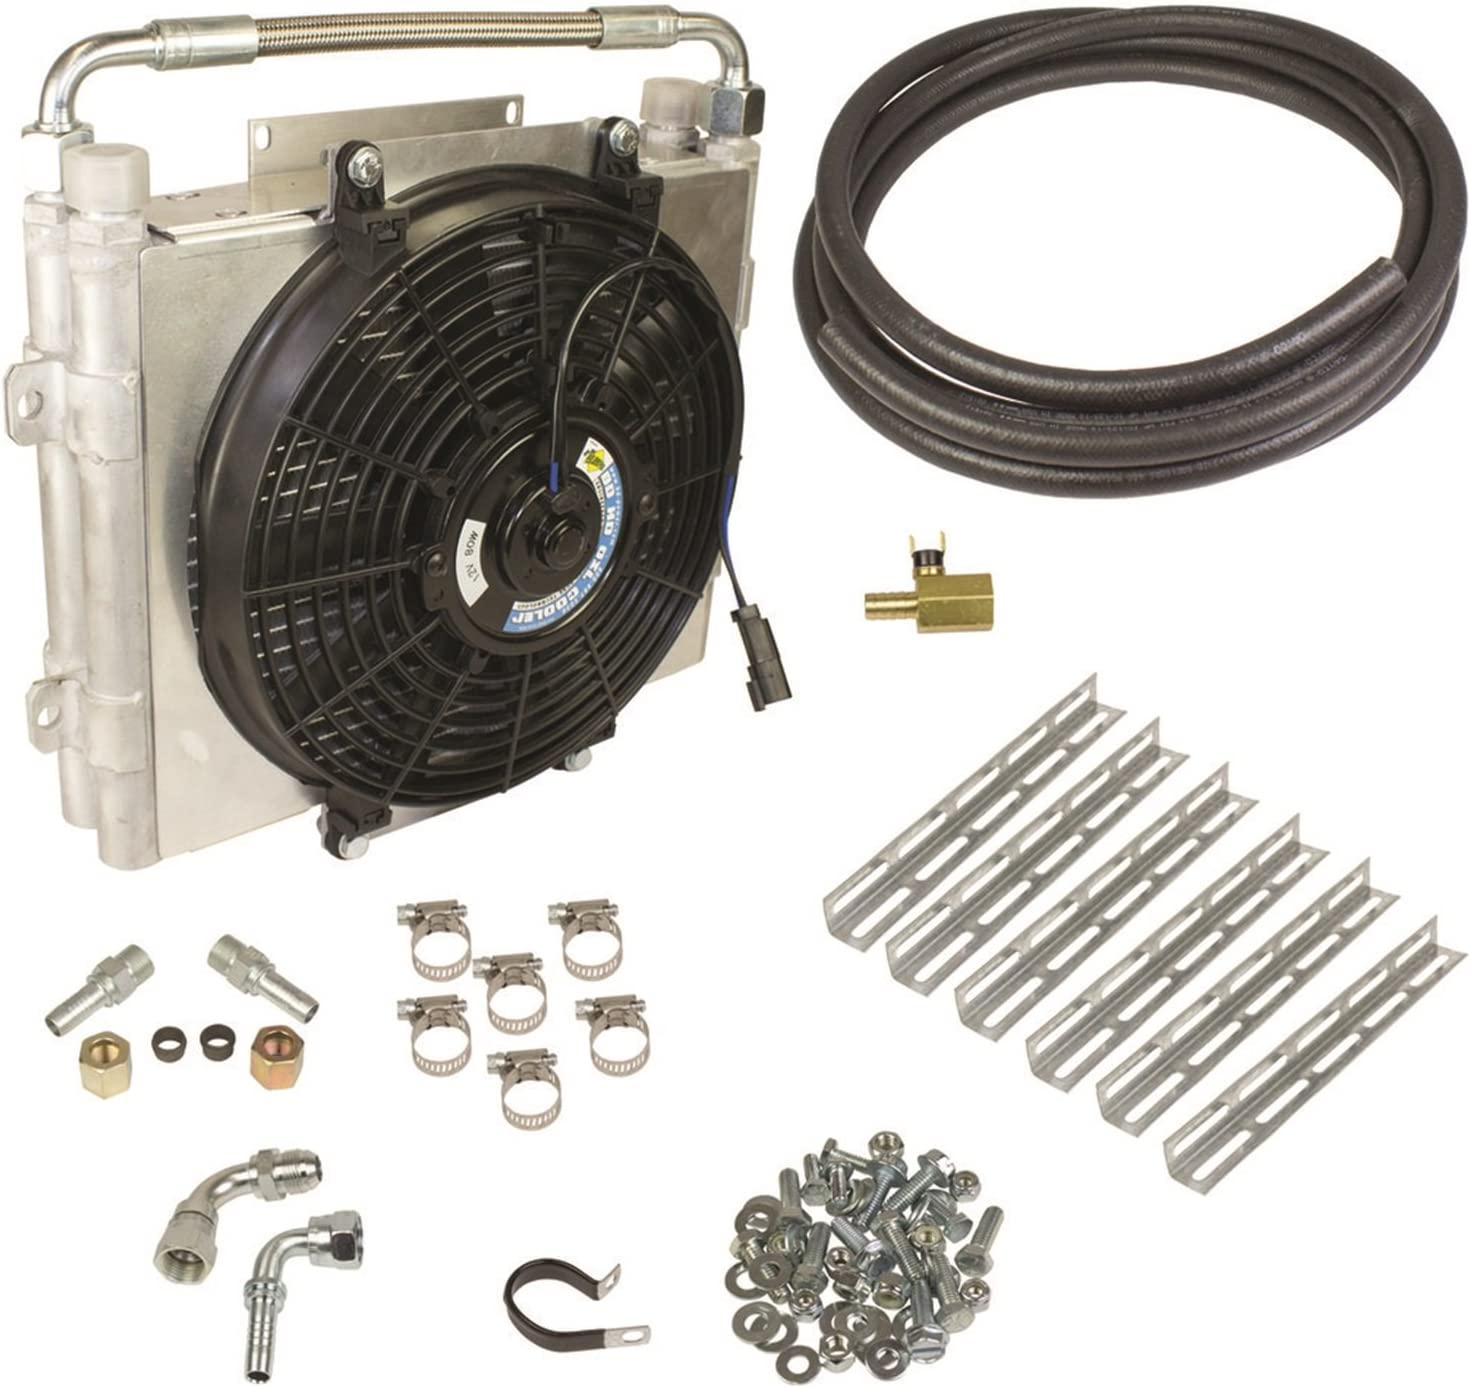 BD Diesel 1030606-DS-58 Xtrude Double Stacked Auxiliary Transmission Cooler Kit 5/8 in. Tubing Incl. Cooler/Bracket/Wiring Harness/Fittings/Temp Sensor/Sensor Adapter/Hardware Xtrude Double Stacked Auxiliary Transmission Cooler Kit